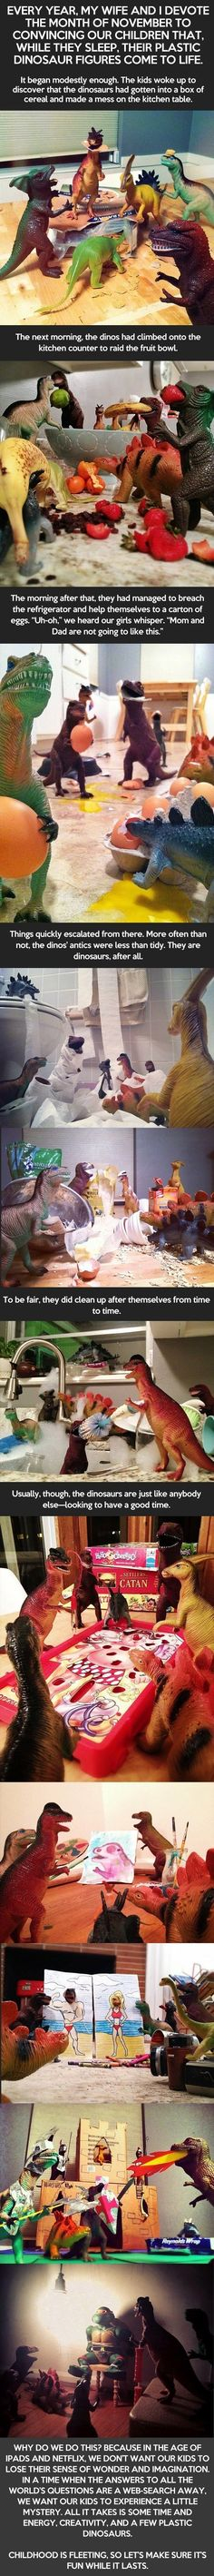 While Their Kids Sleep, These Parents Pull Off This Amazing Stunt: Plastic Dinosaur Figures Come to Life. haha that's fun Haha, Wow Art, Random Stuff, Cool Stuff, Funny Stuff, Kid Stuff, Funny Things, Kids Sleep, To Infinity And Beyond